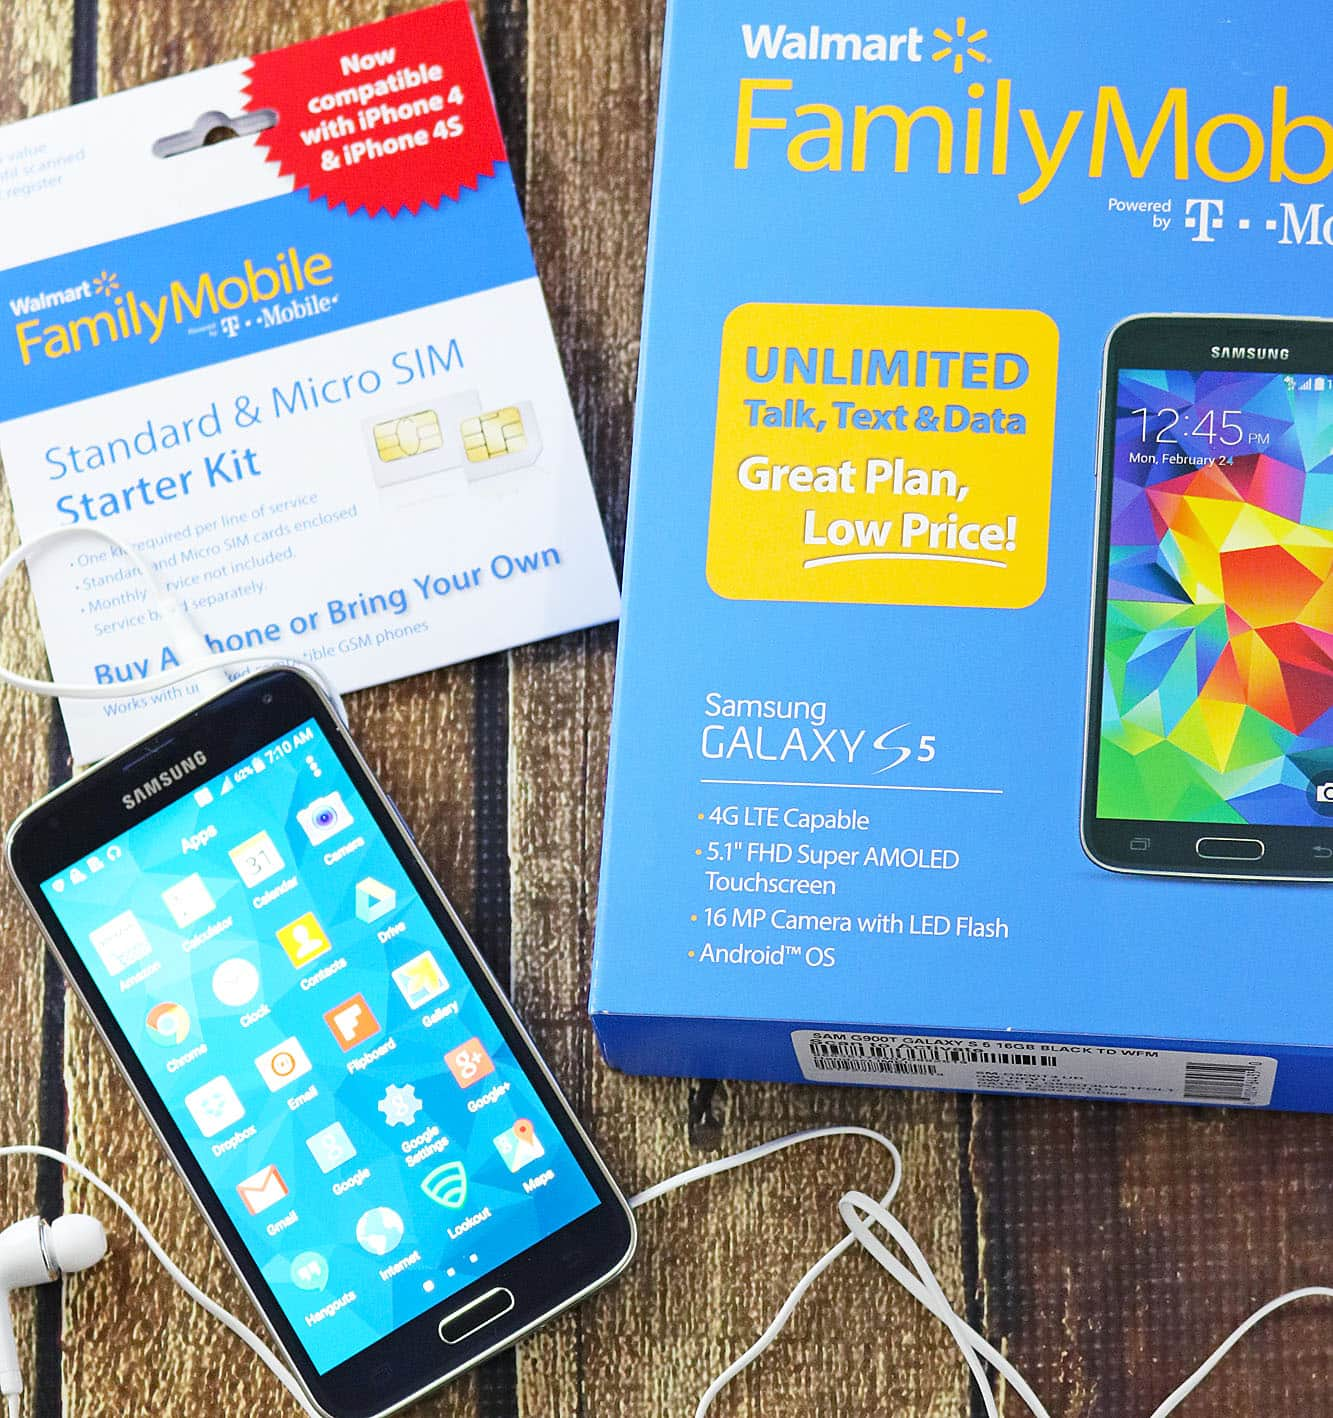 Walmart Family Mobile New 10GB of 4GLTE talk text data plan and Samsung Galaxy S5